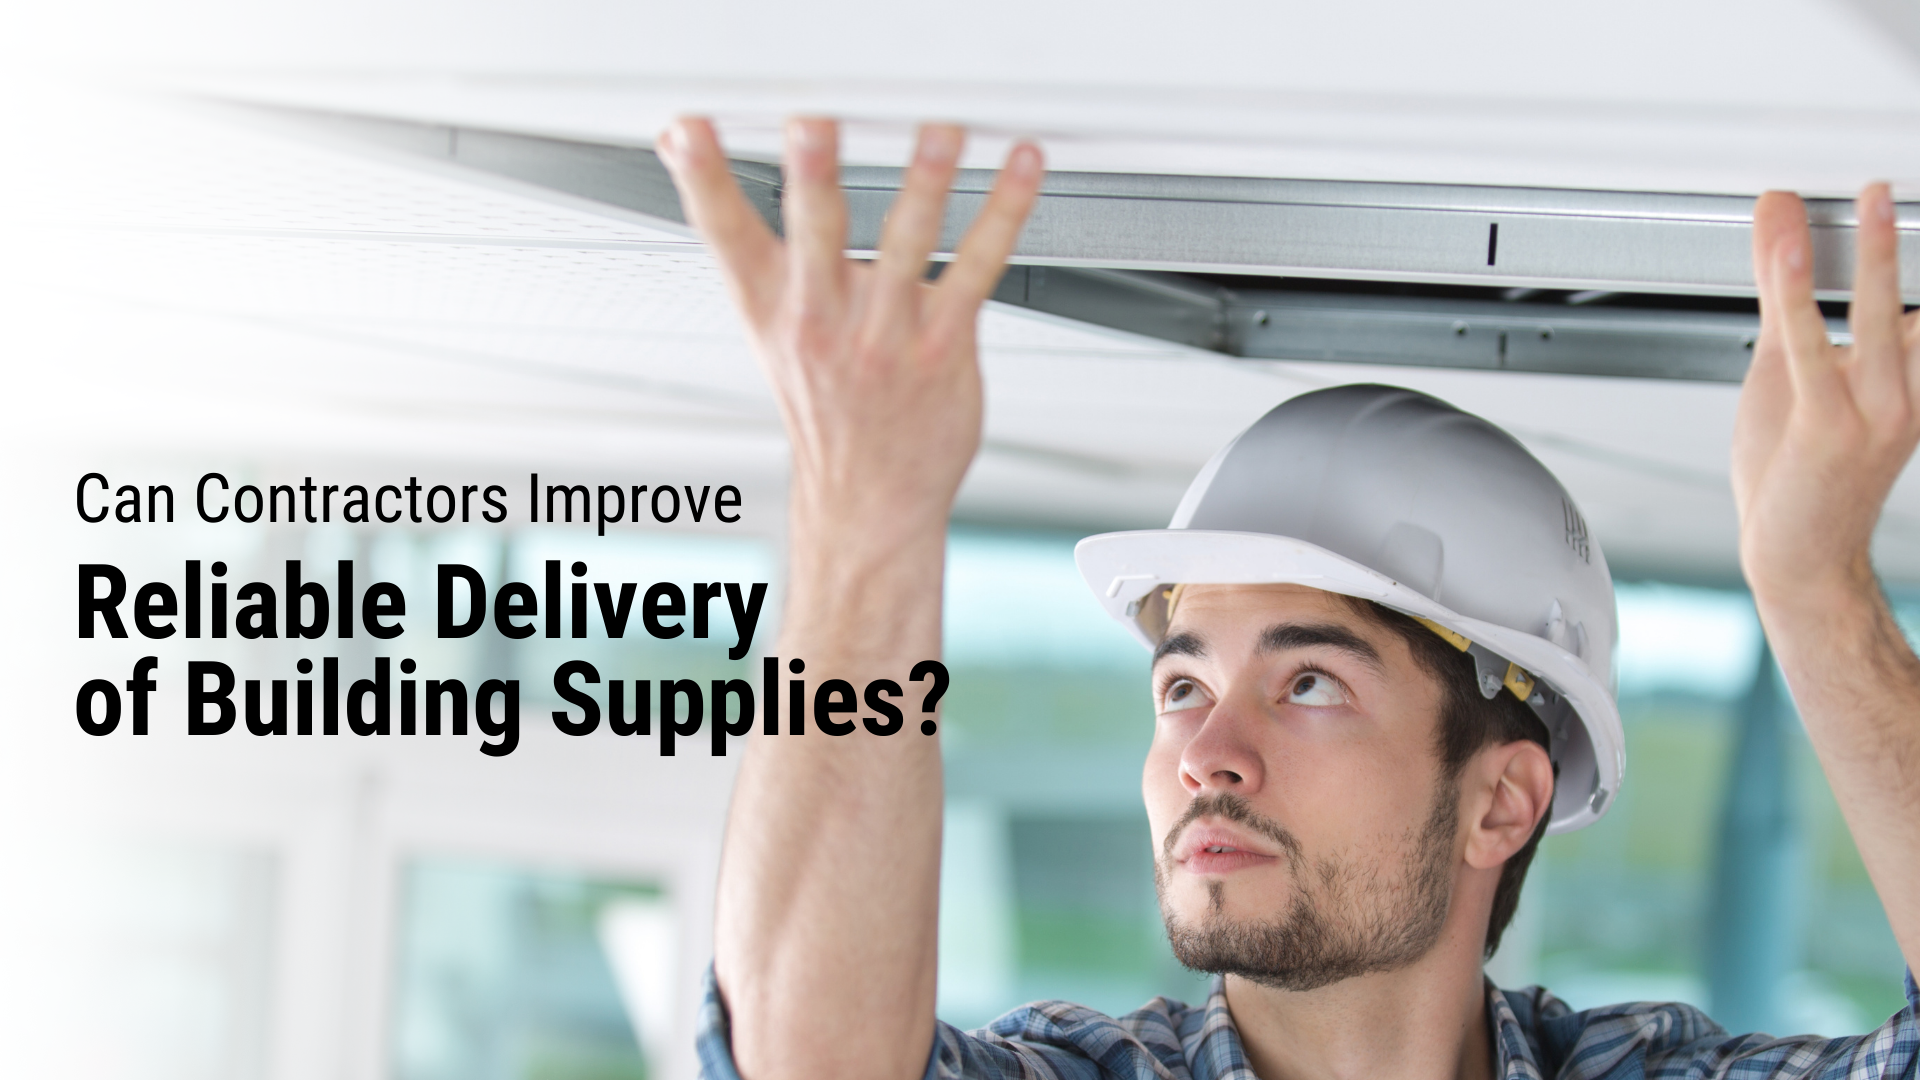 Can Contractors Improve Reliable Delivery of Building Supplies?